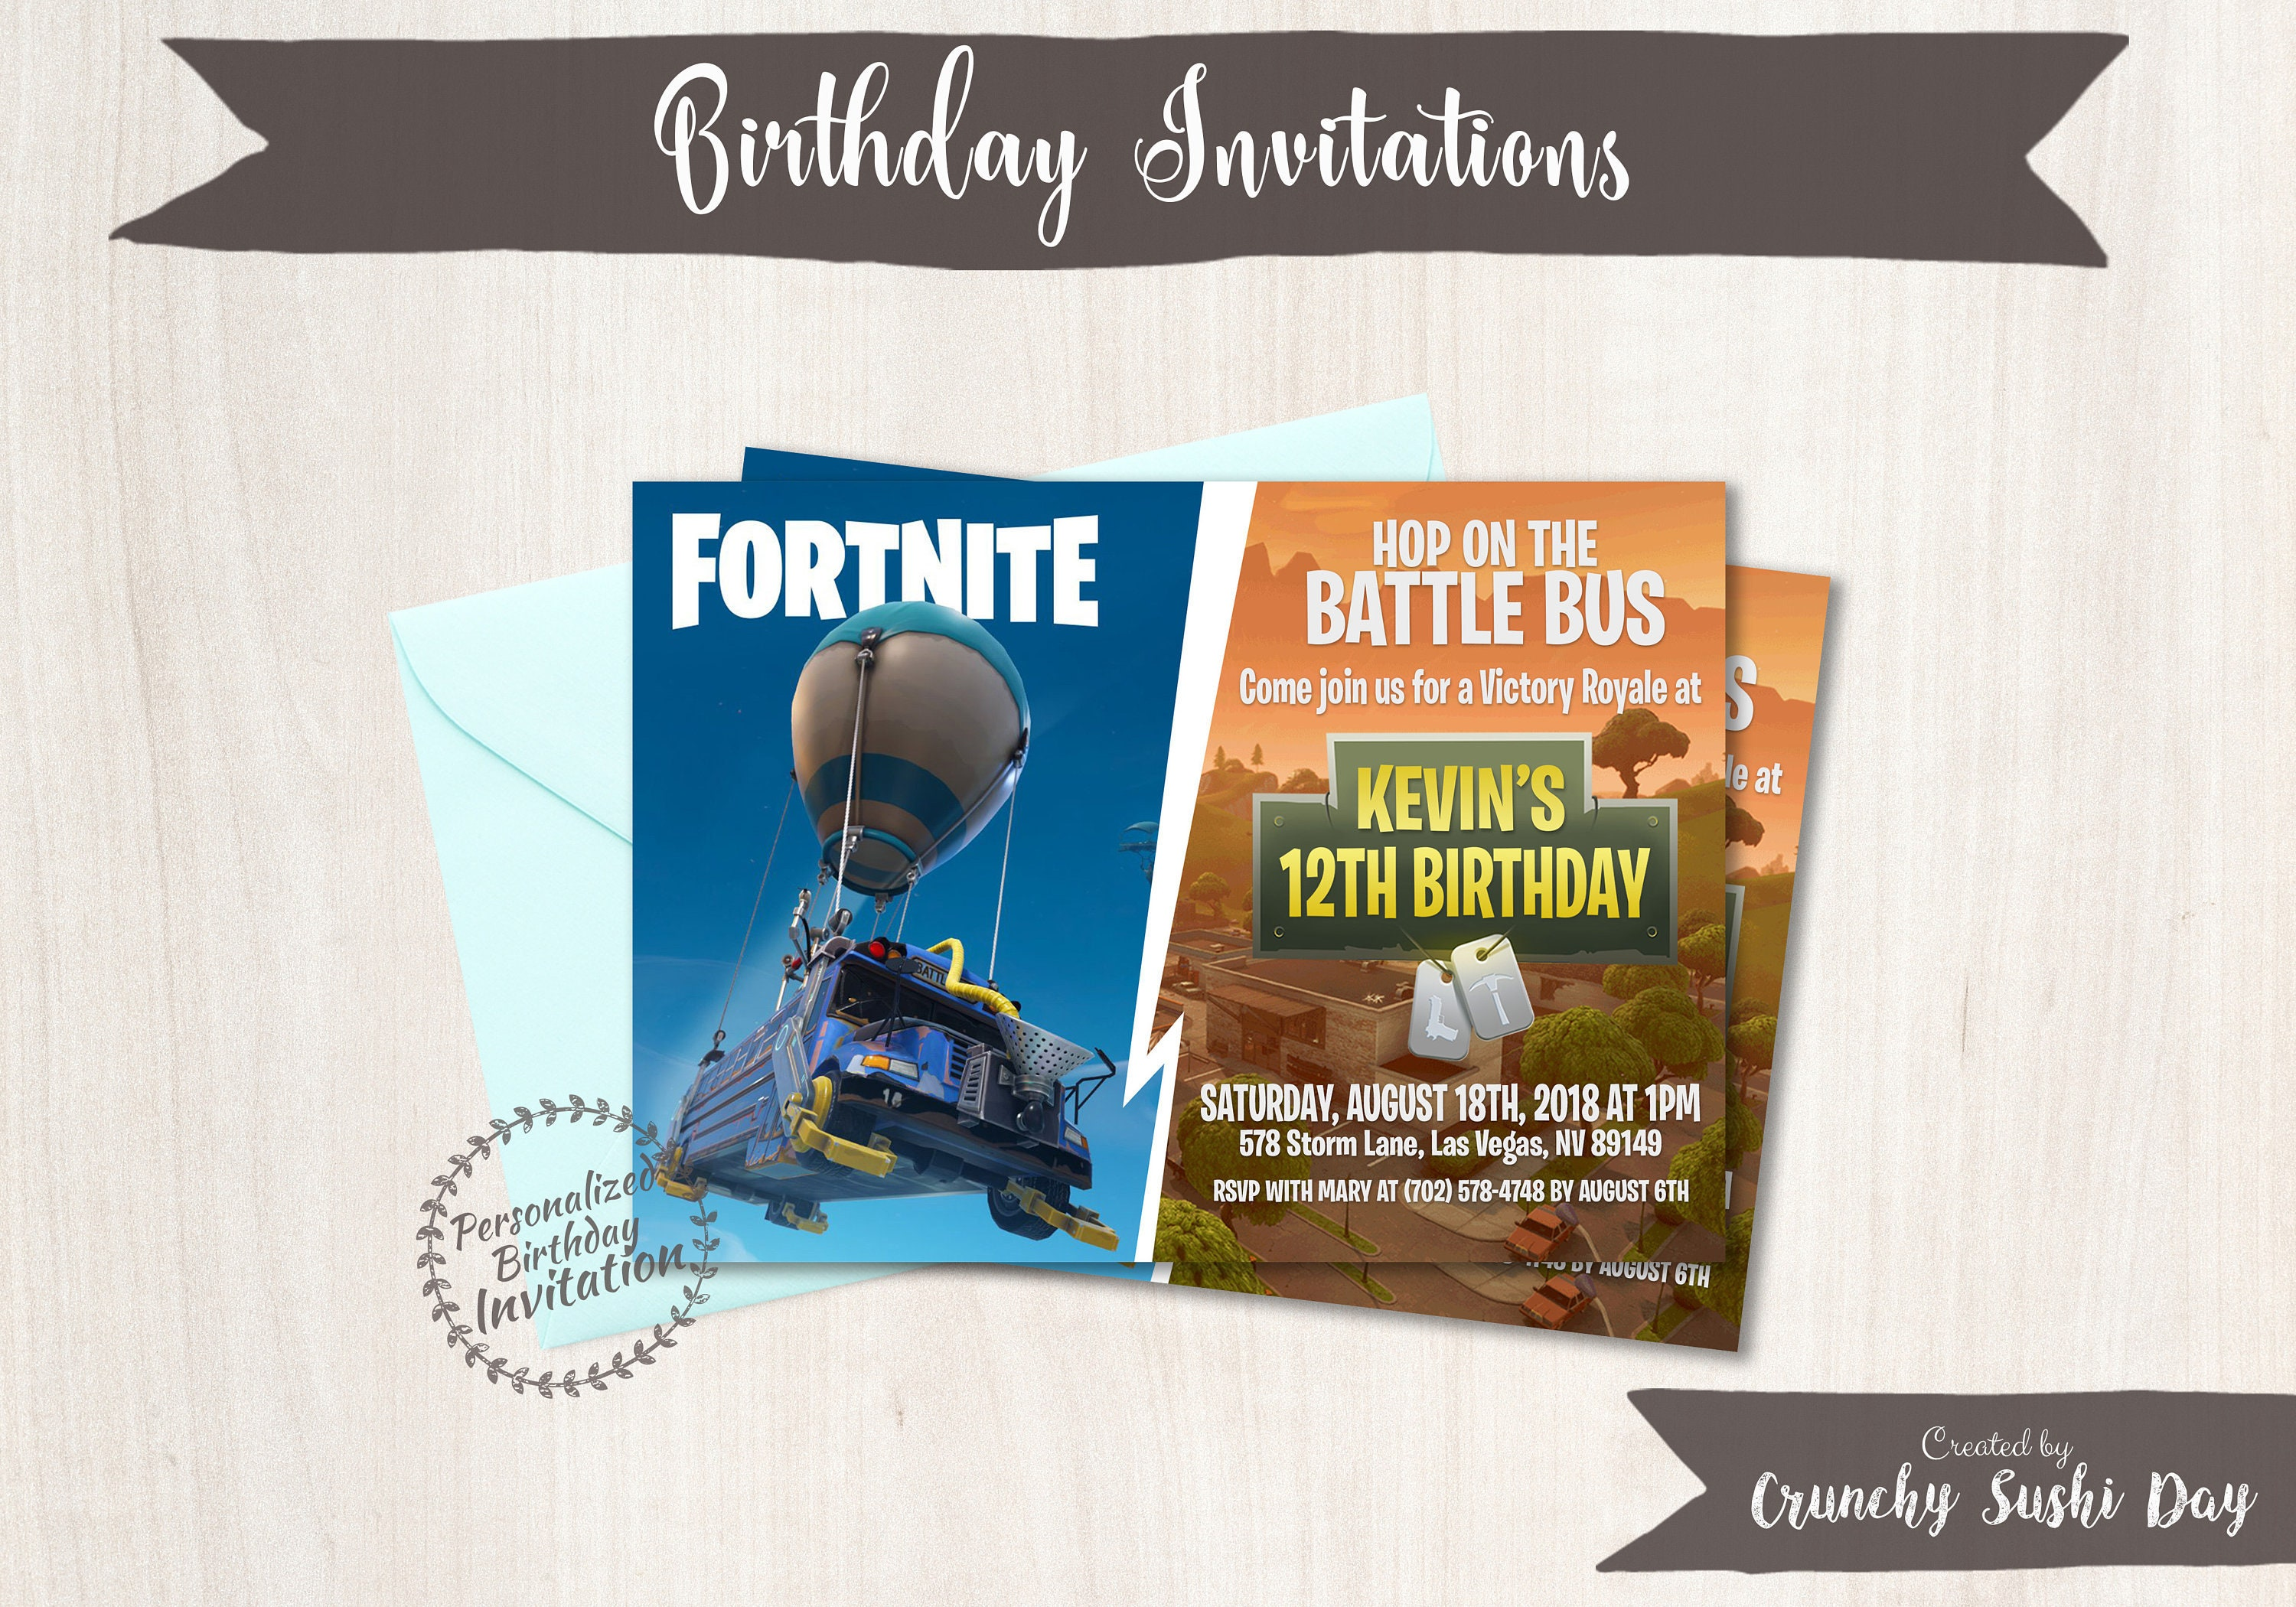 Fortnite birthday party invitations boy birthday invitations video fortnite birthday party invitations boy birthday invitations video game customizable birthday party xbox printable invitations 080 filmwisefo